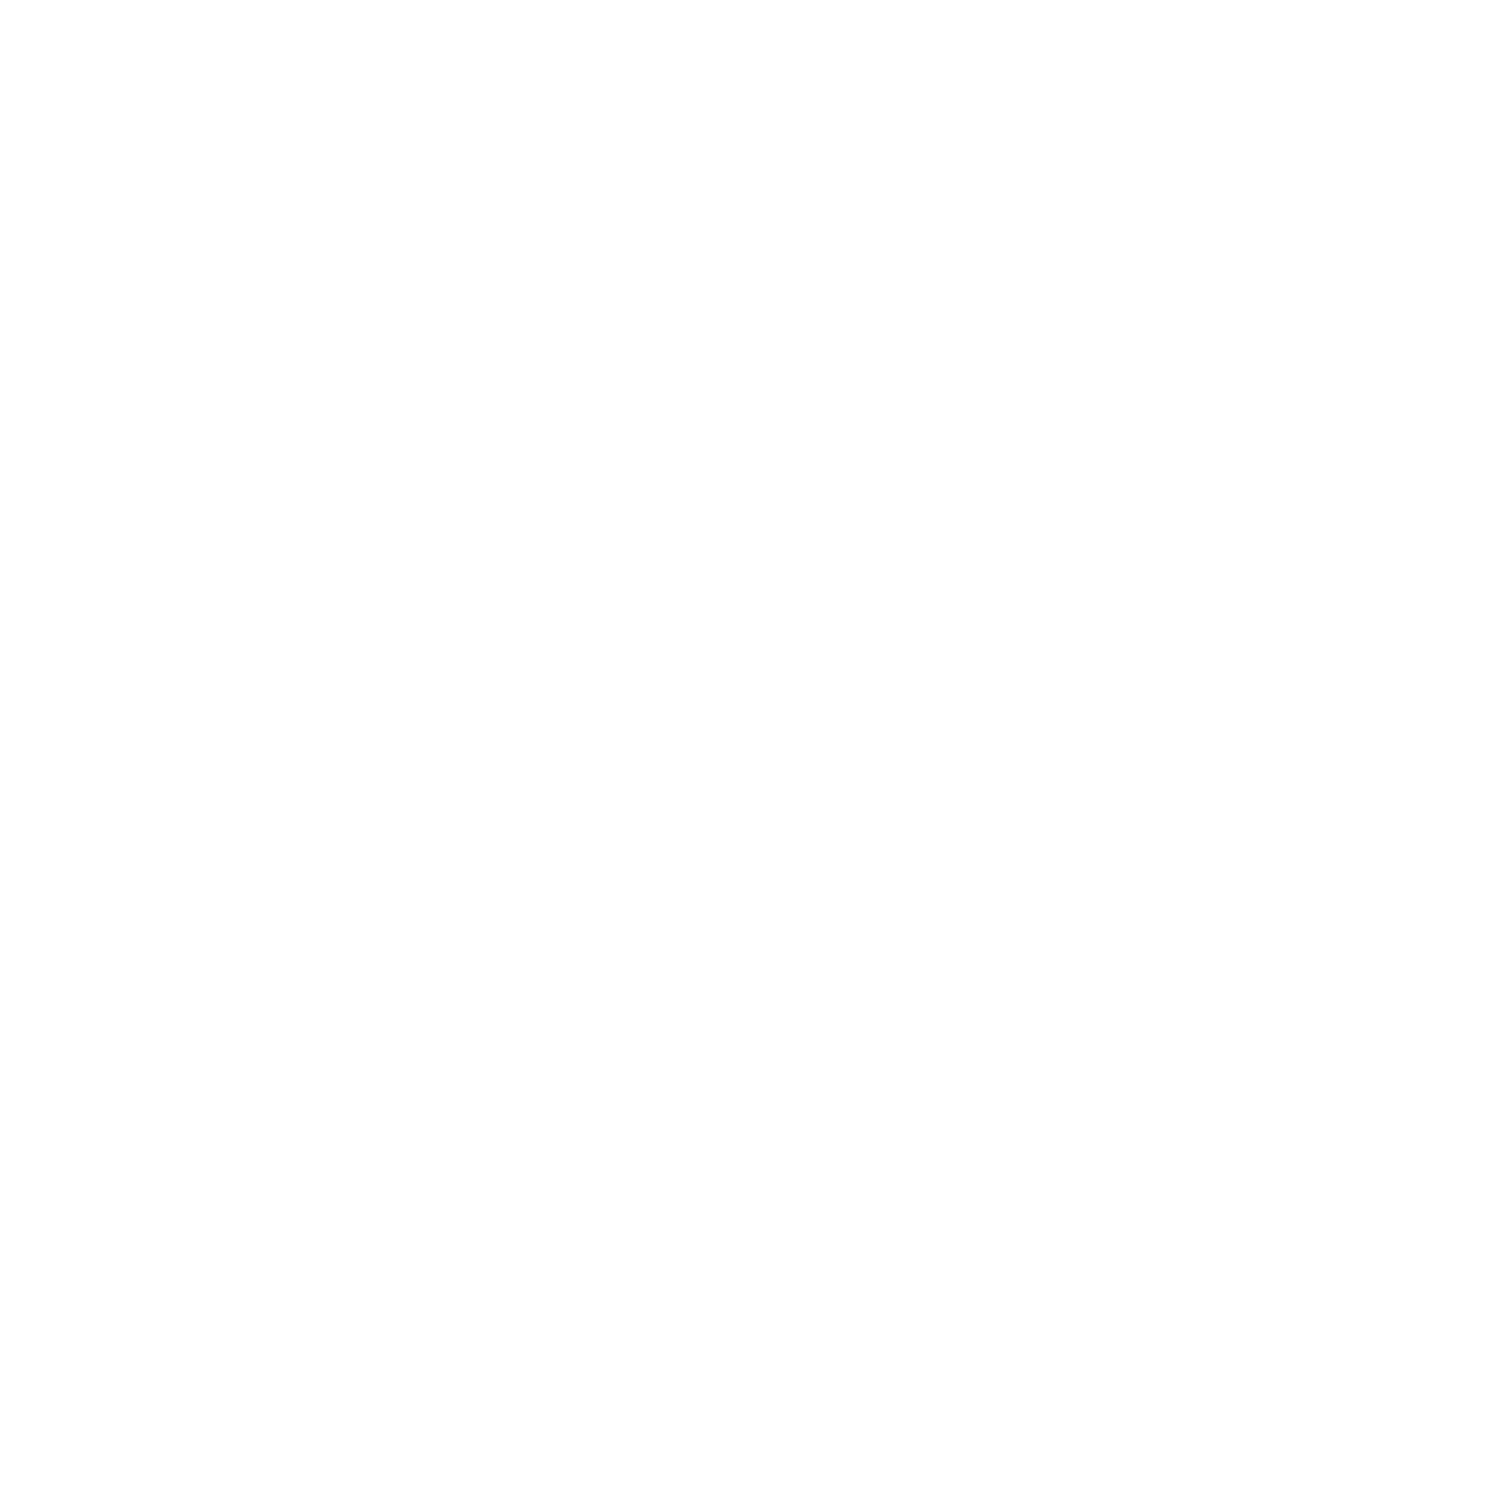 Cloud Craft Studios - Austin Video Production